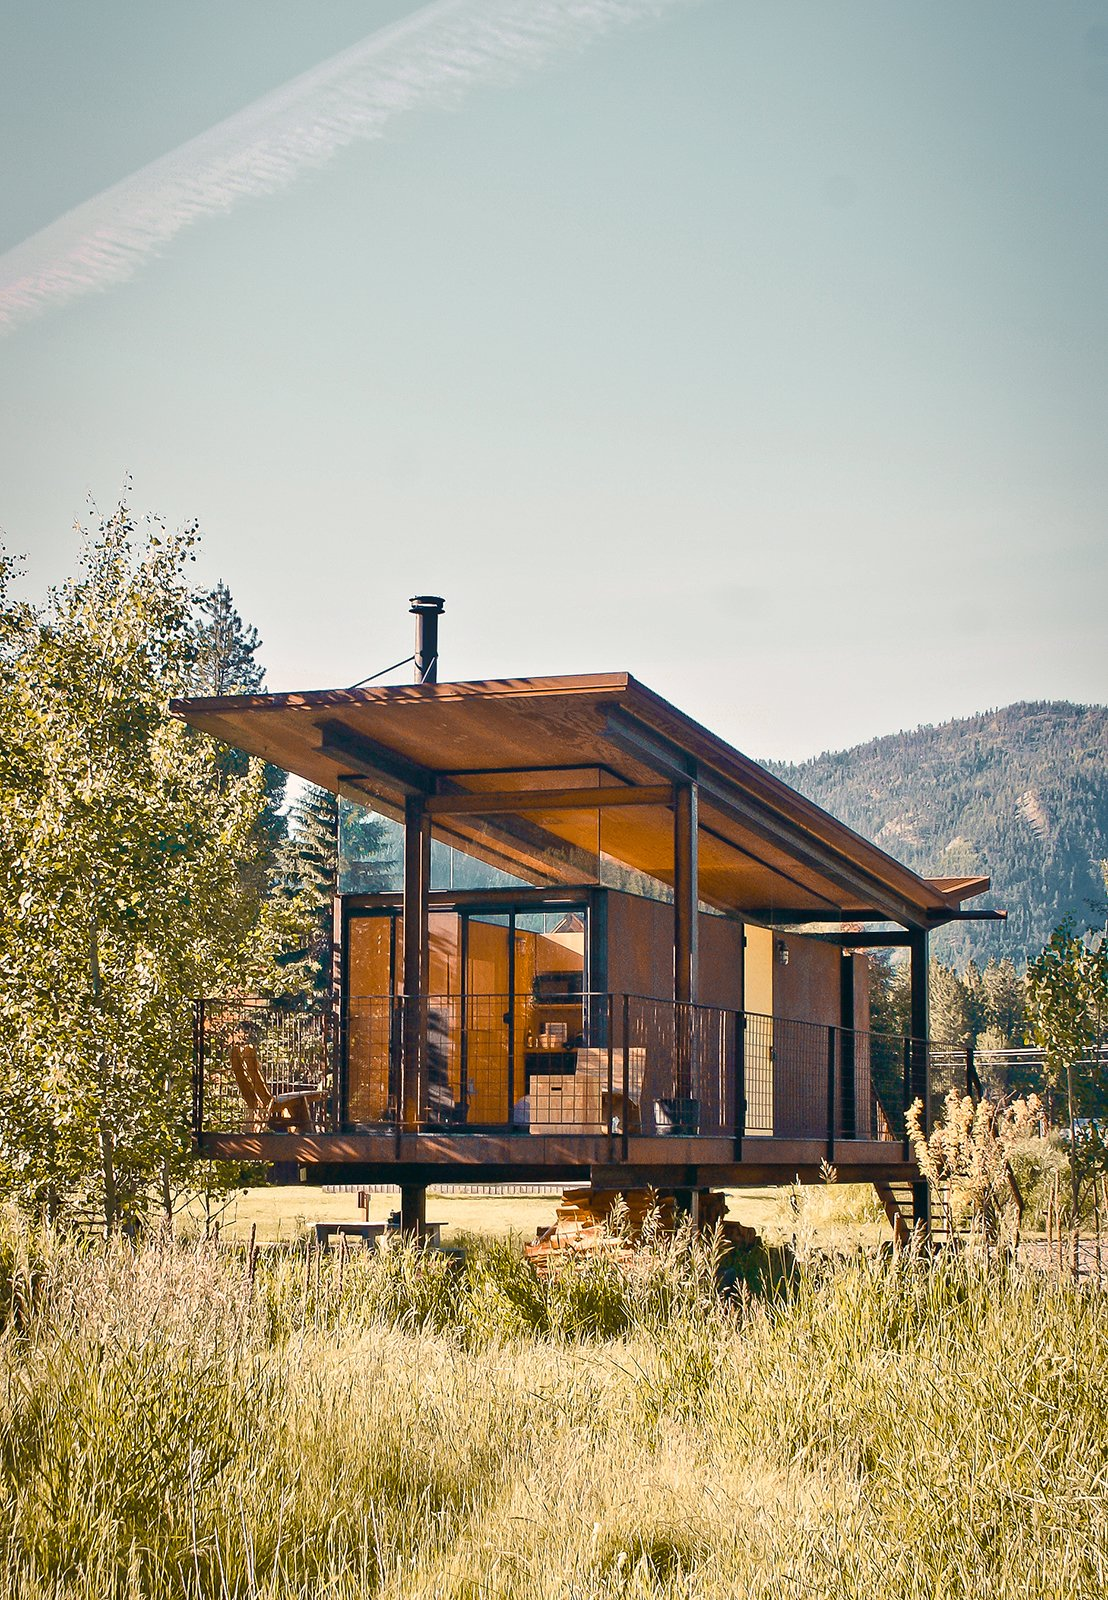 """The steel-clad Rolling Huts designed by Olson Kundig Architects in Manzama, Washington, sit lightly on the land thanks to wheels that allow the tiny residences to """"hover"""" above the site, optimizing views of the landscape. Photo by Derek Pirozzi. Tagged: Exterior, Cabin, Butterfly, Metal, Metal, and Glass.  Best Exterior Butterfly Cabin Photos from Olson Kundig Houses"""